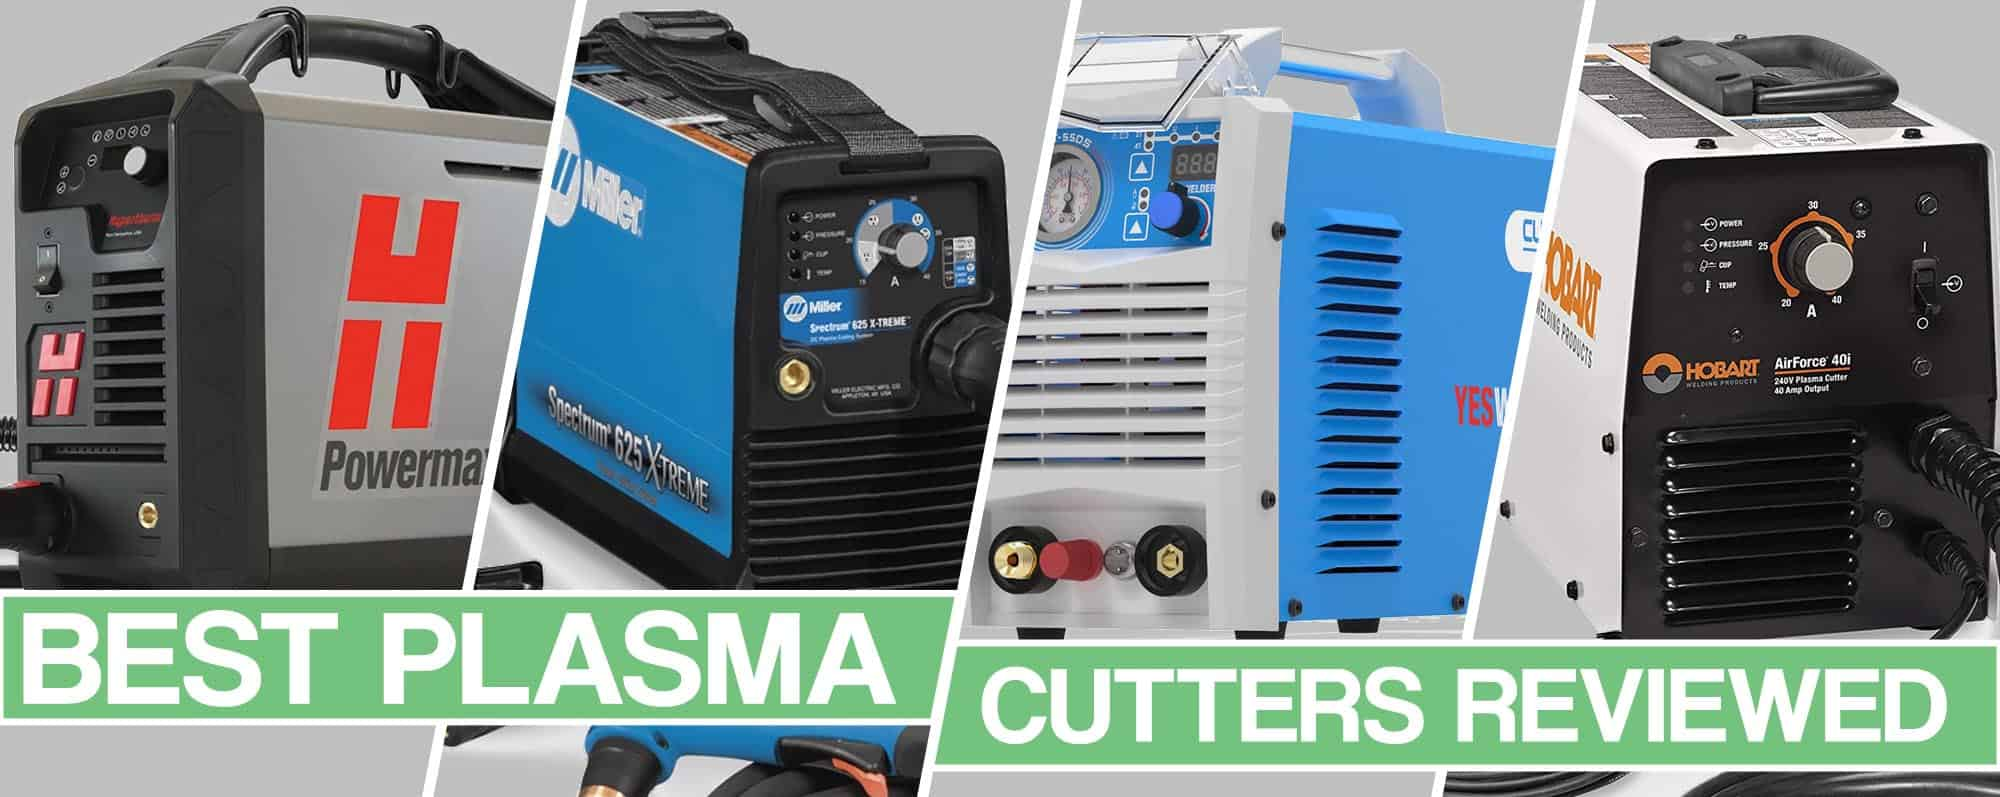 image of the best plasma cutters